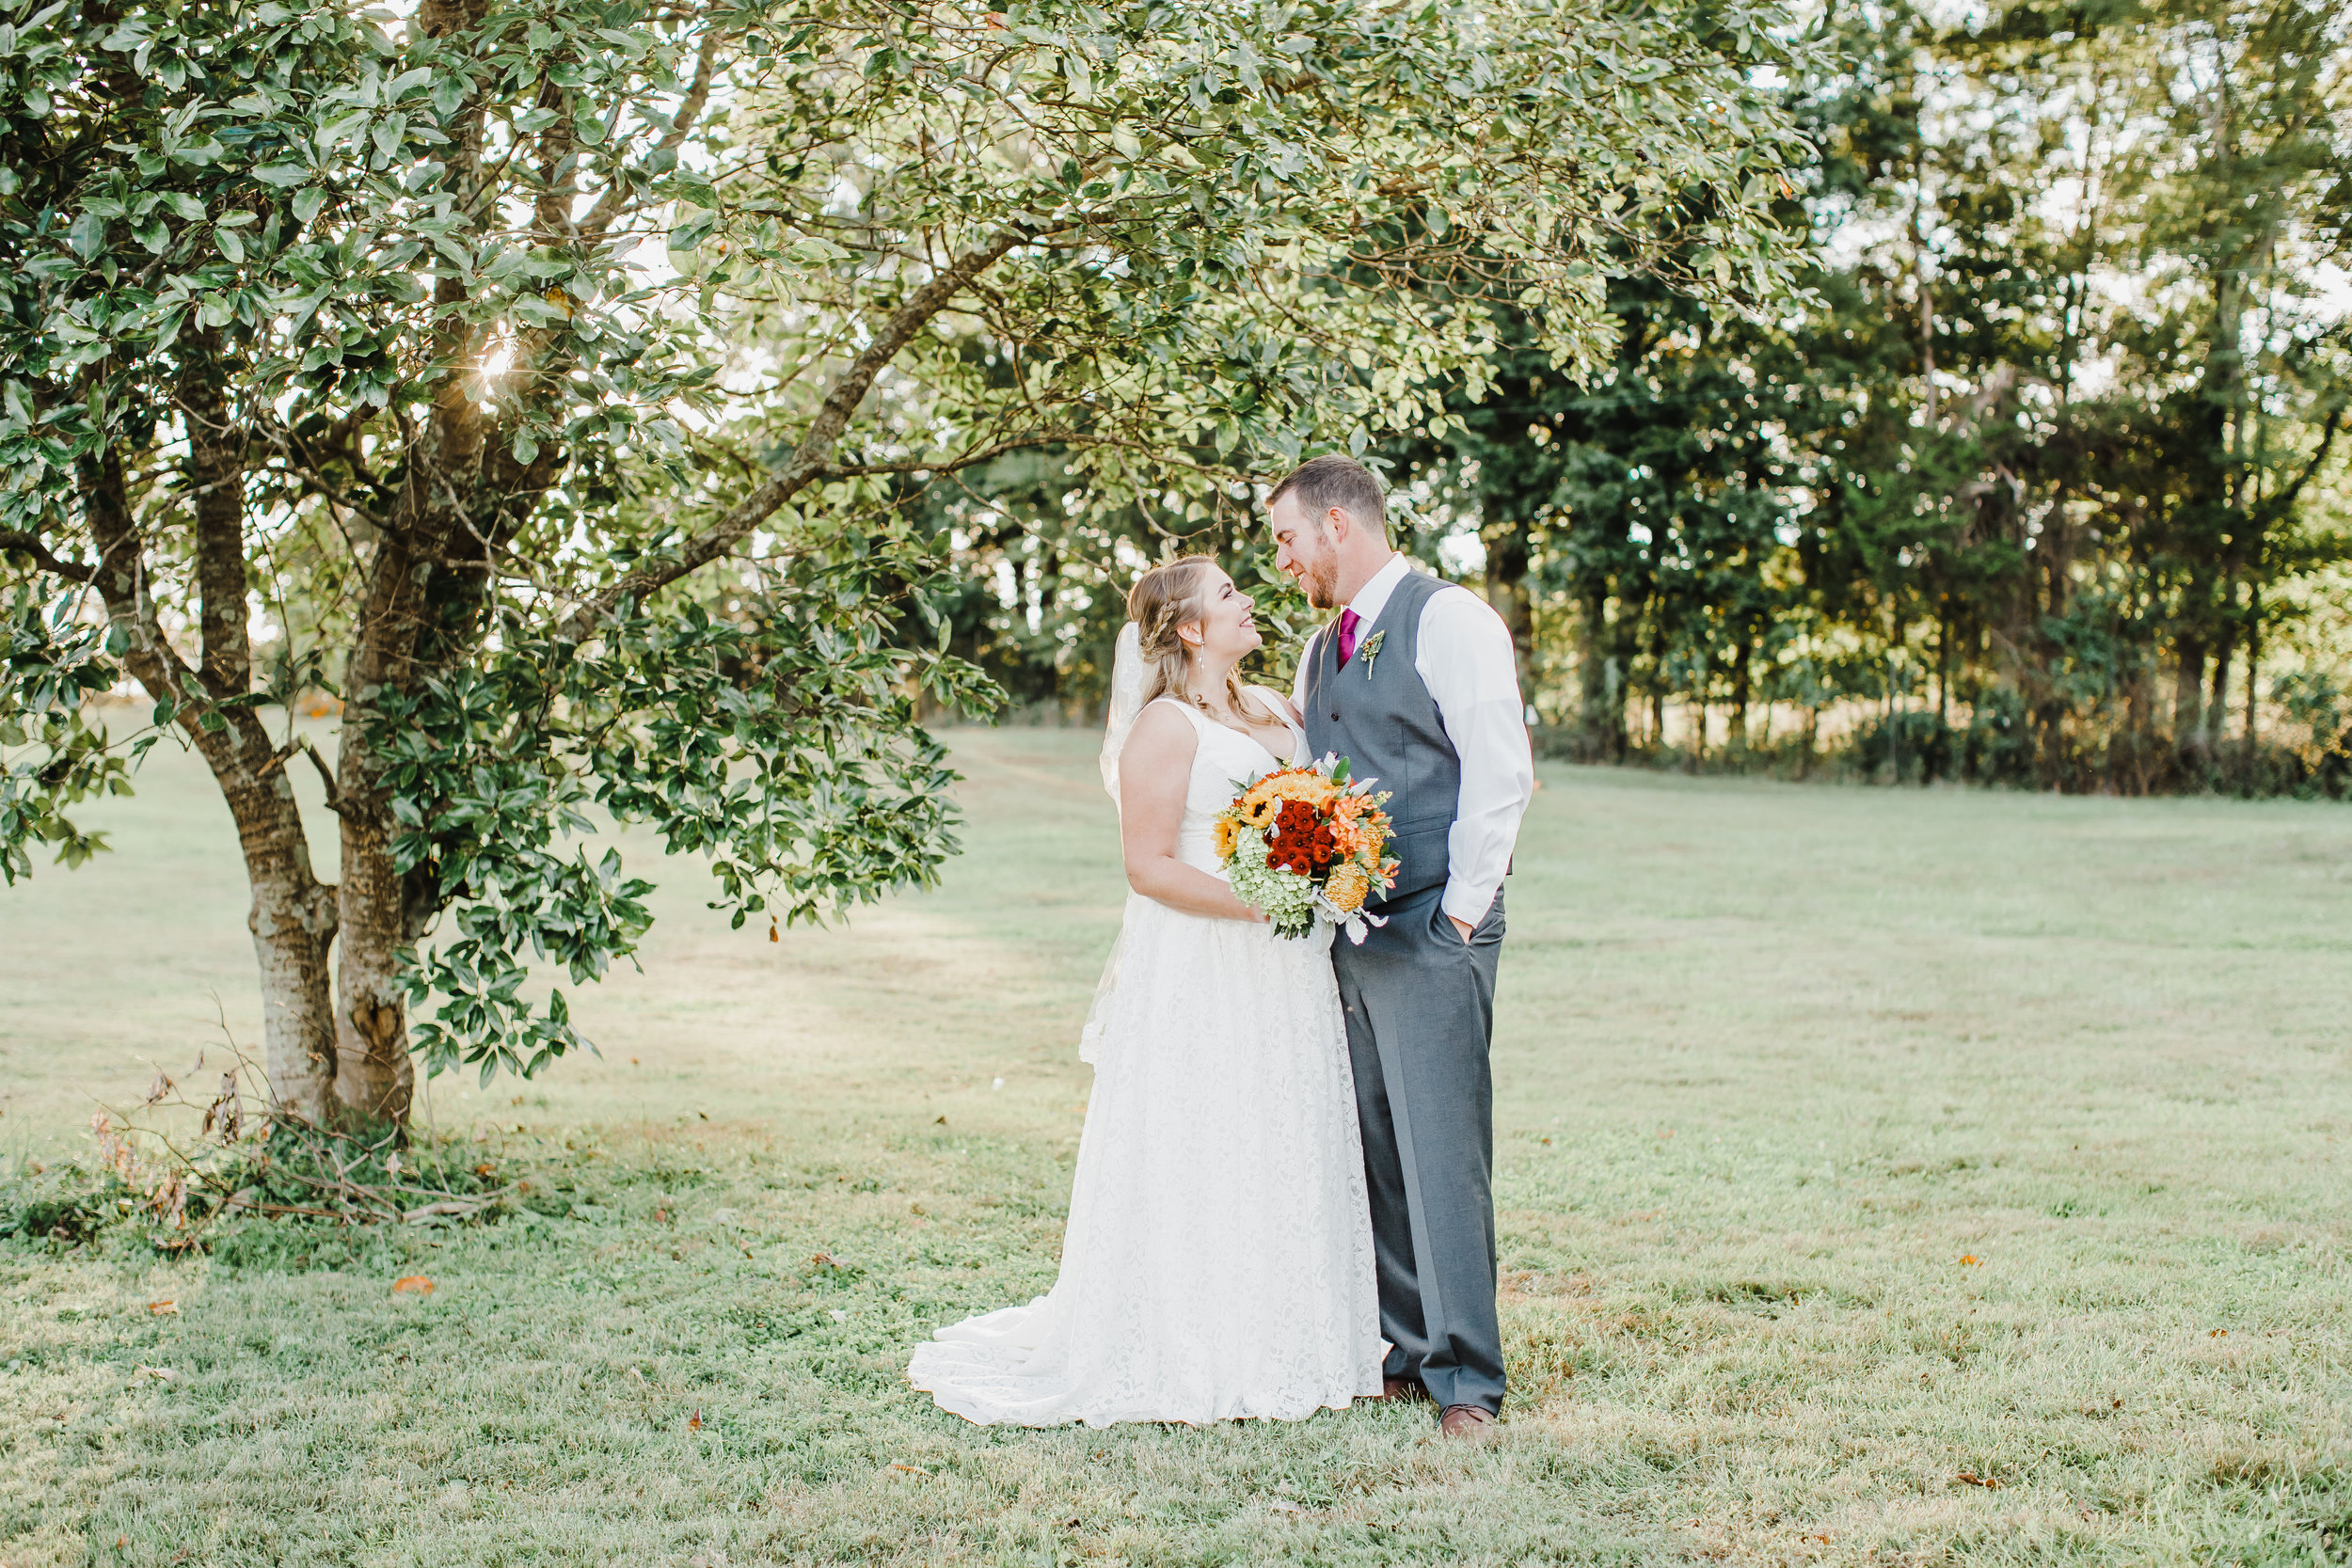 Fling - Virginia Wedding Photographer - Photography by Amy Nicole-1020-24.jpg